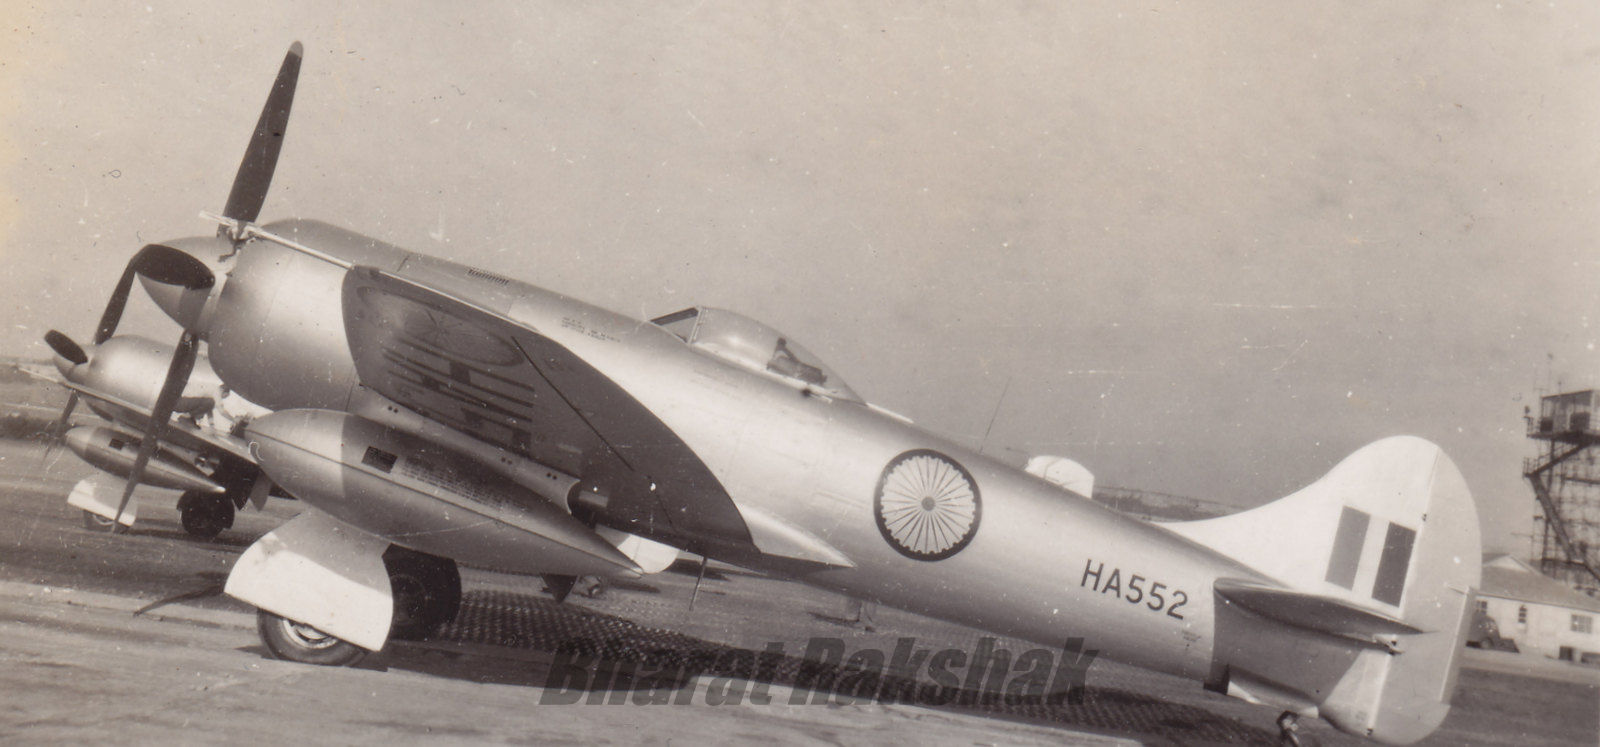 HA552 in Chakra Markings